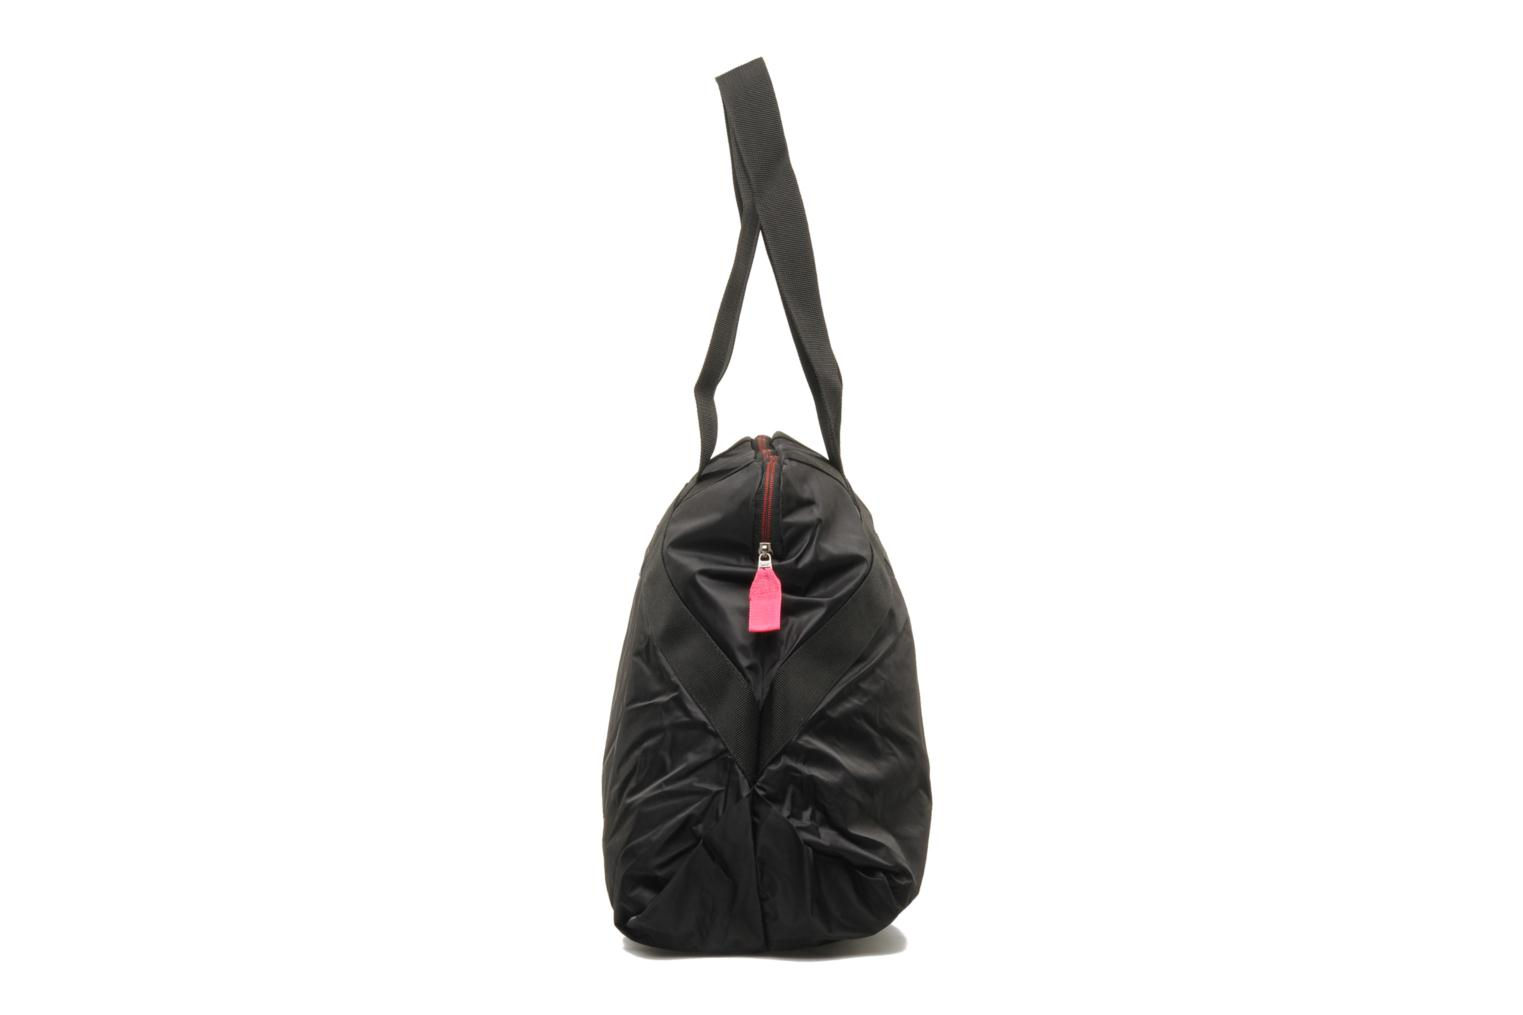 Ath B Duffle BLACK/CONDENSED PINK S09